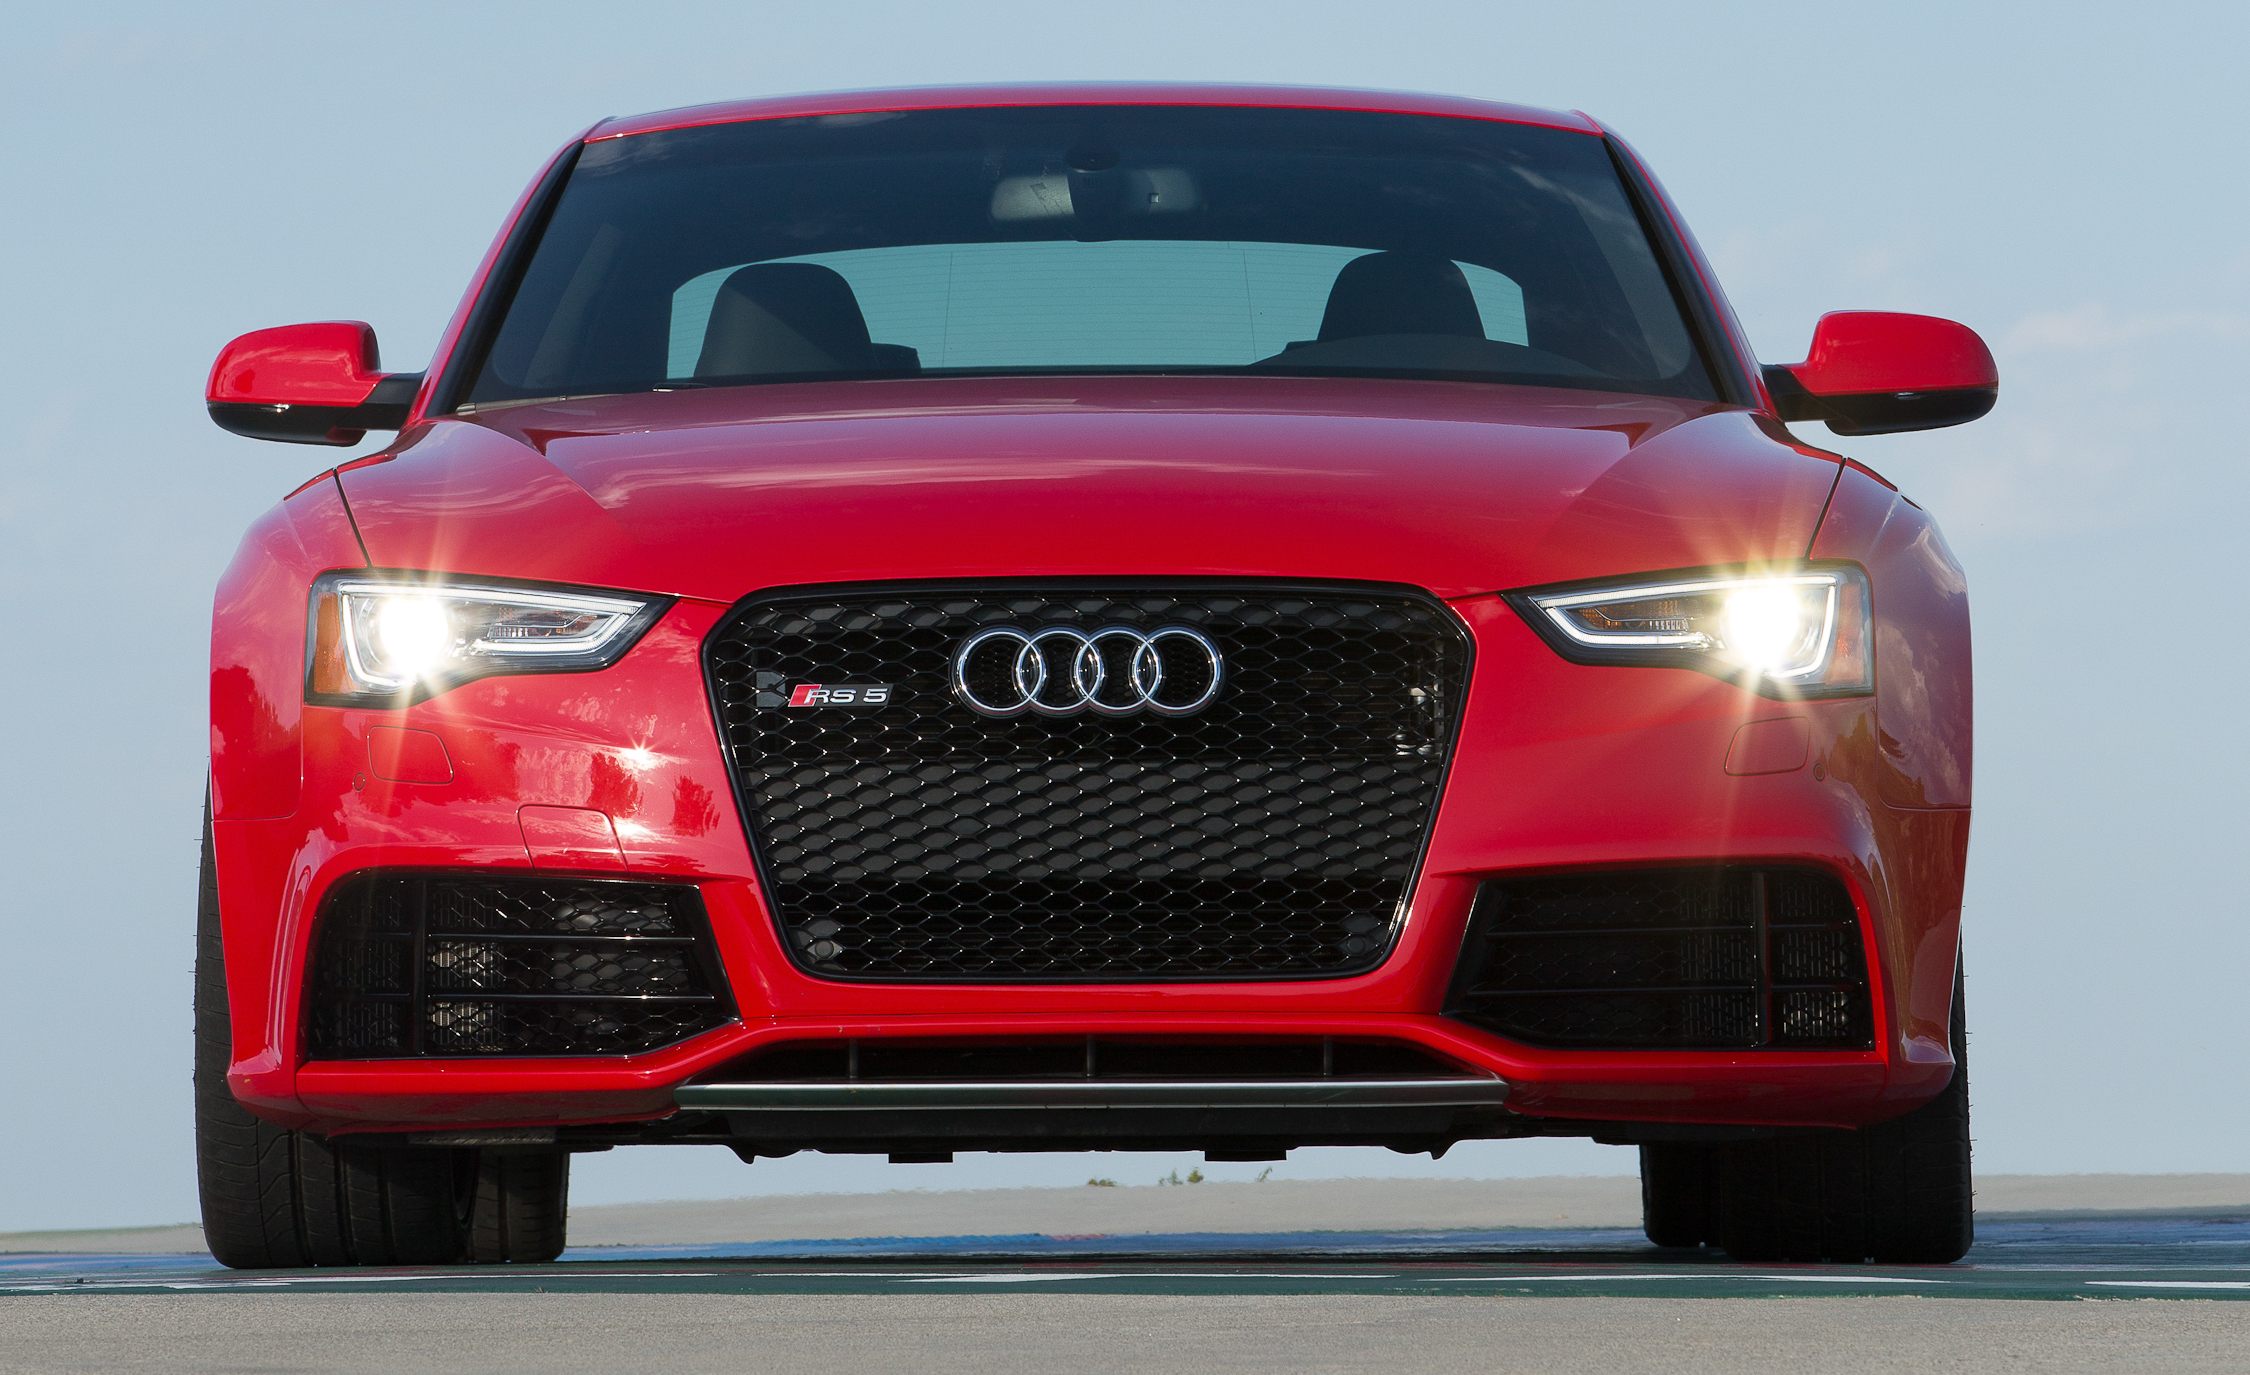 2013 Audi RS 5 Exterior Front (Photo 4 of 41)